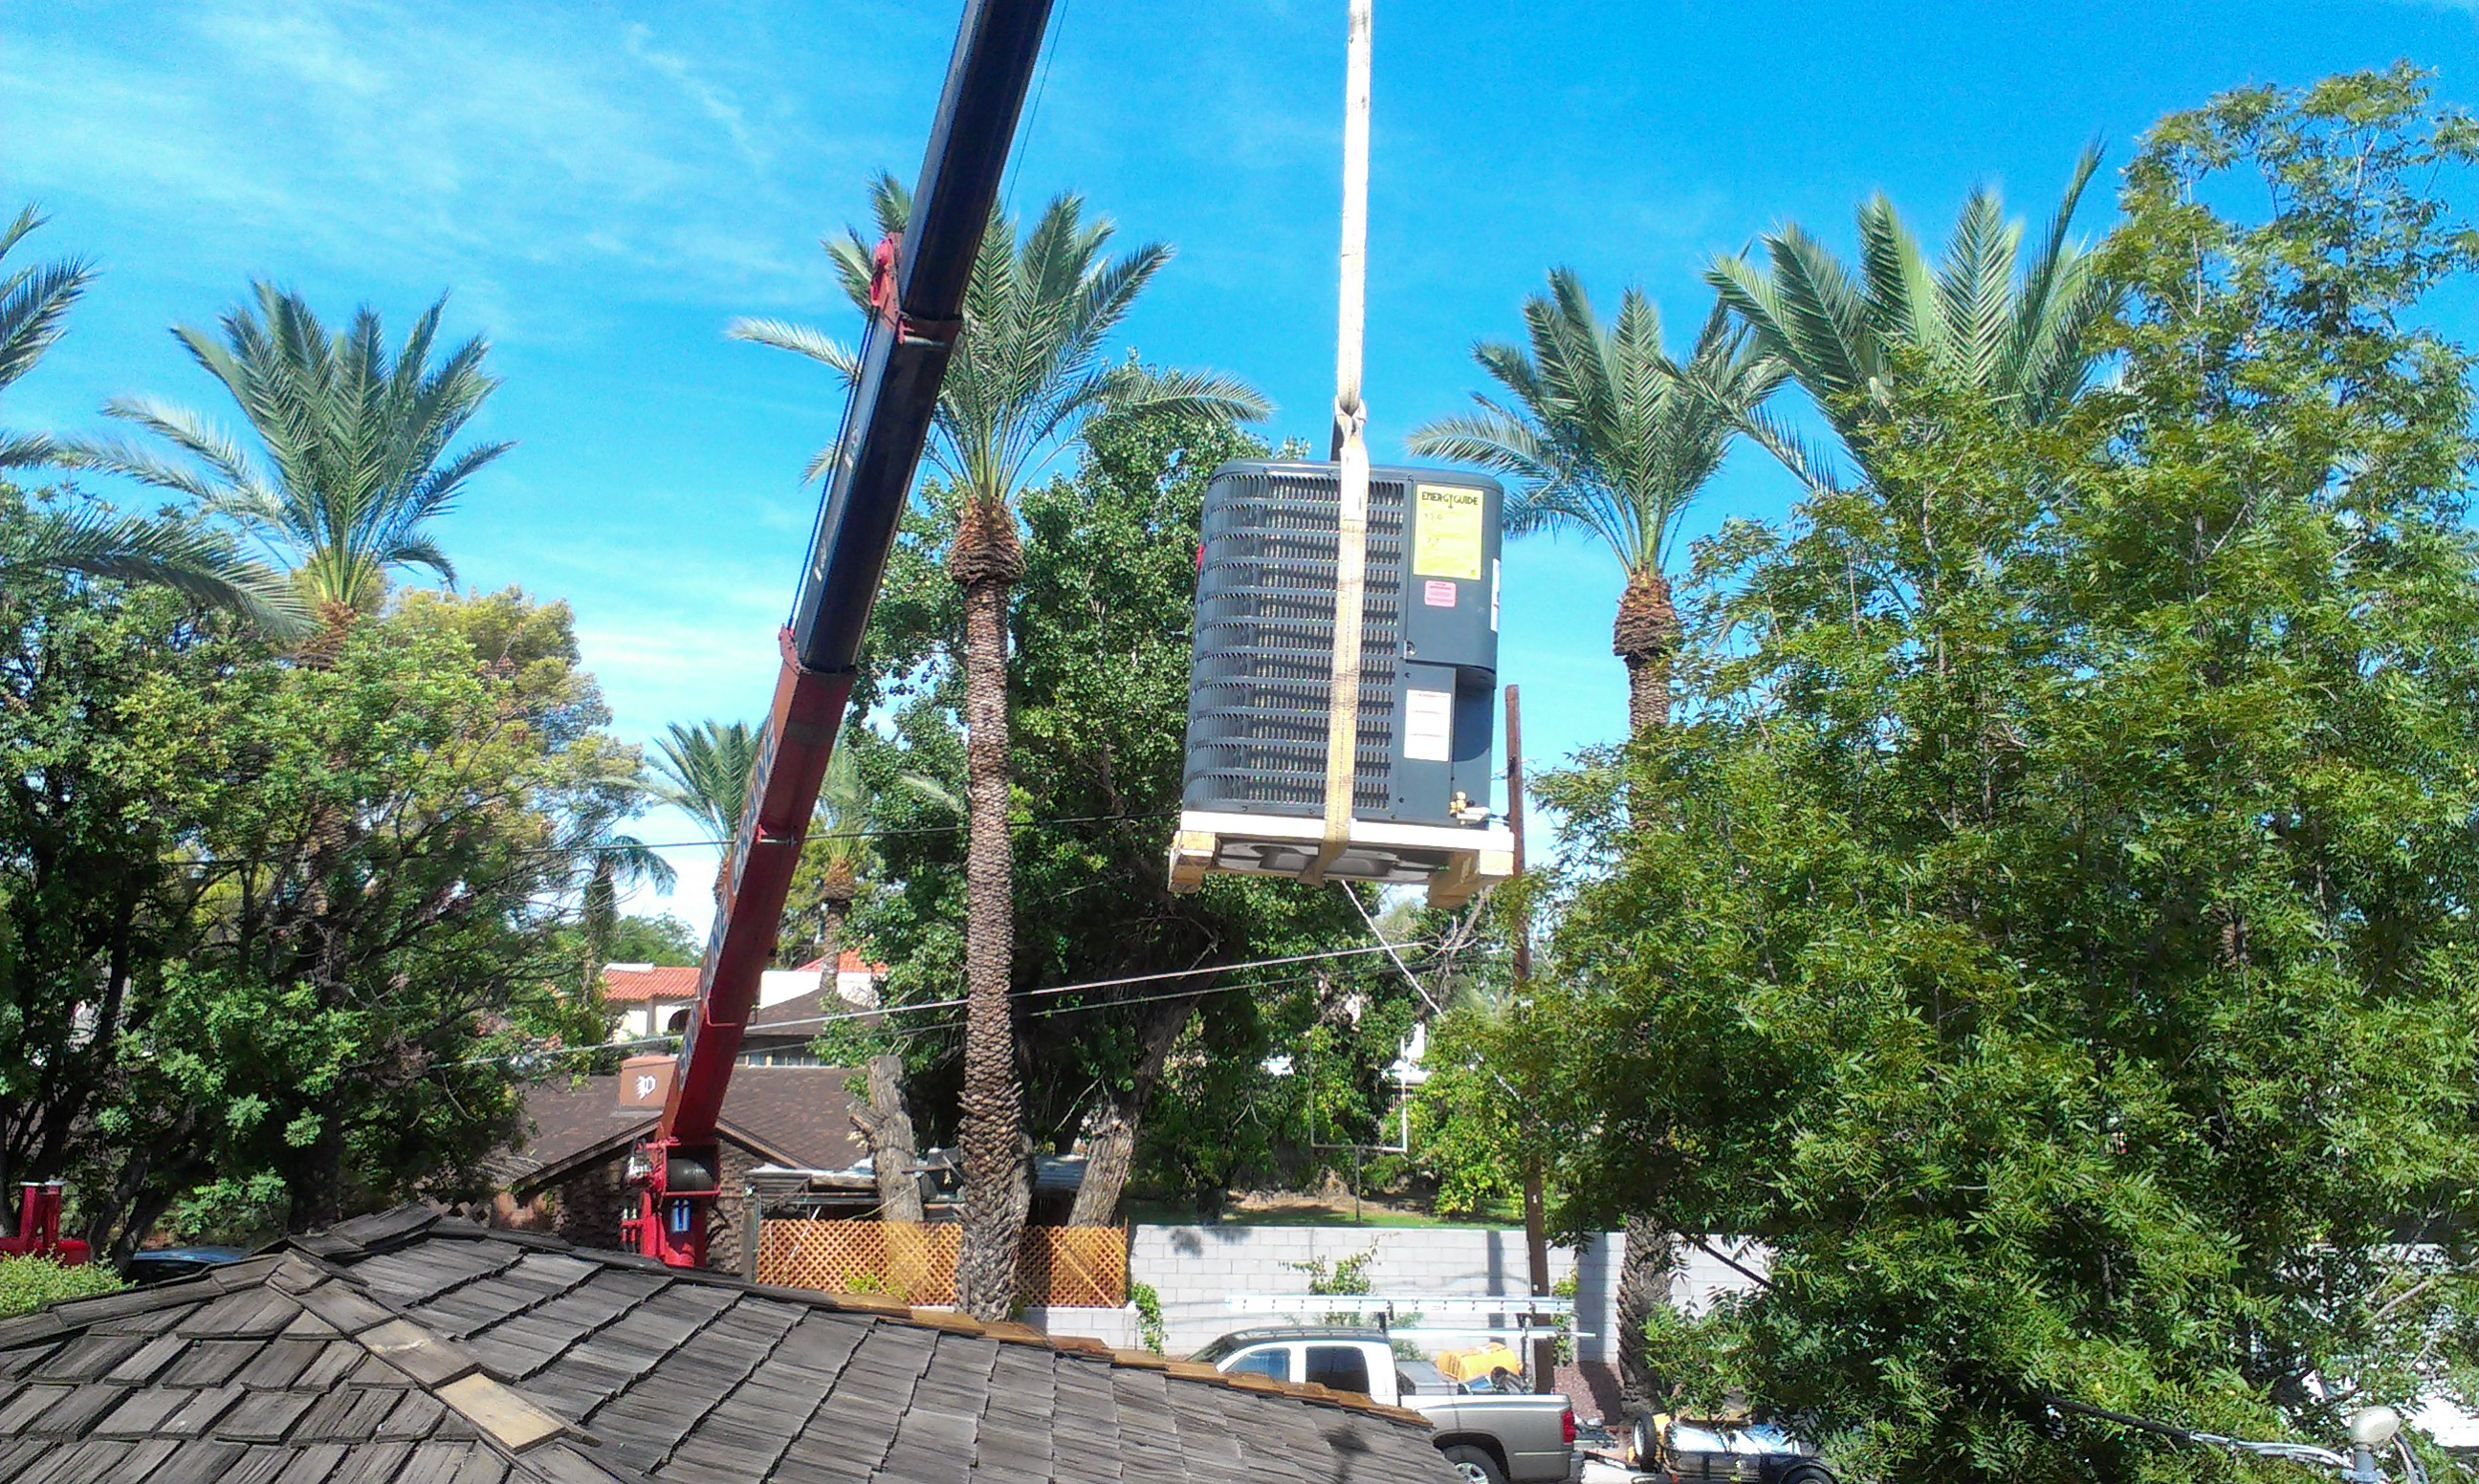 Goodman condenser being hoisted to roof by crane